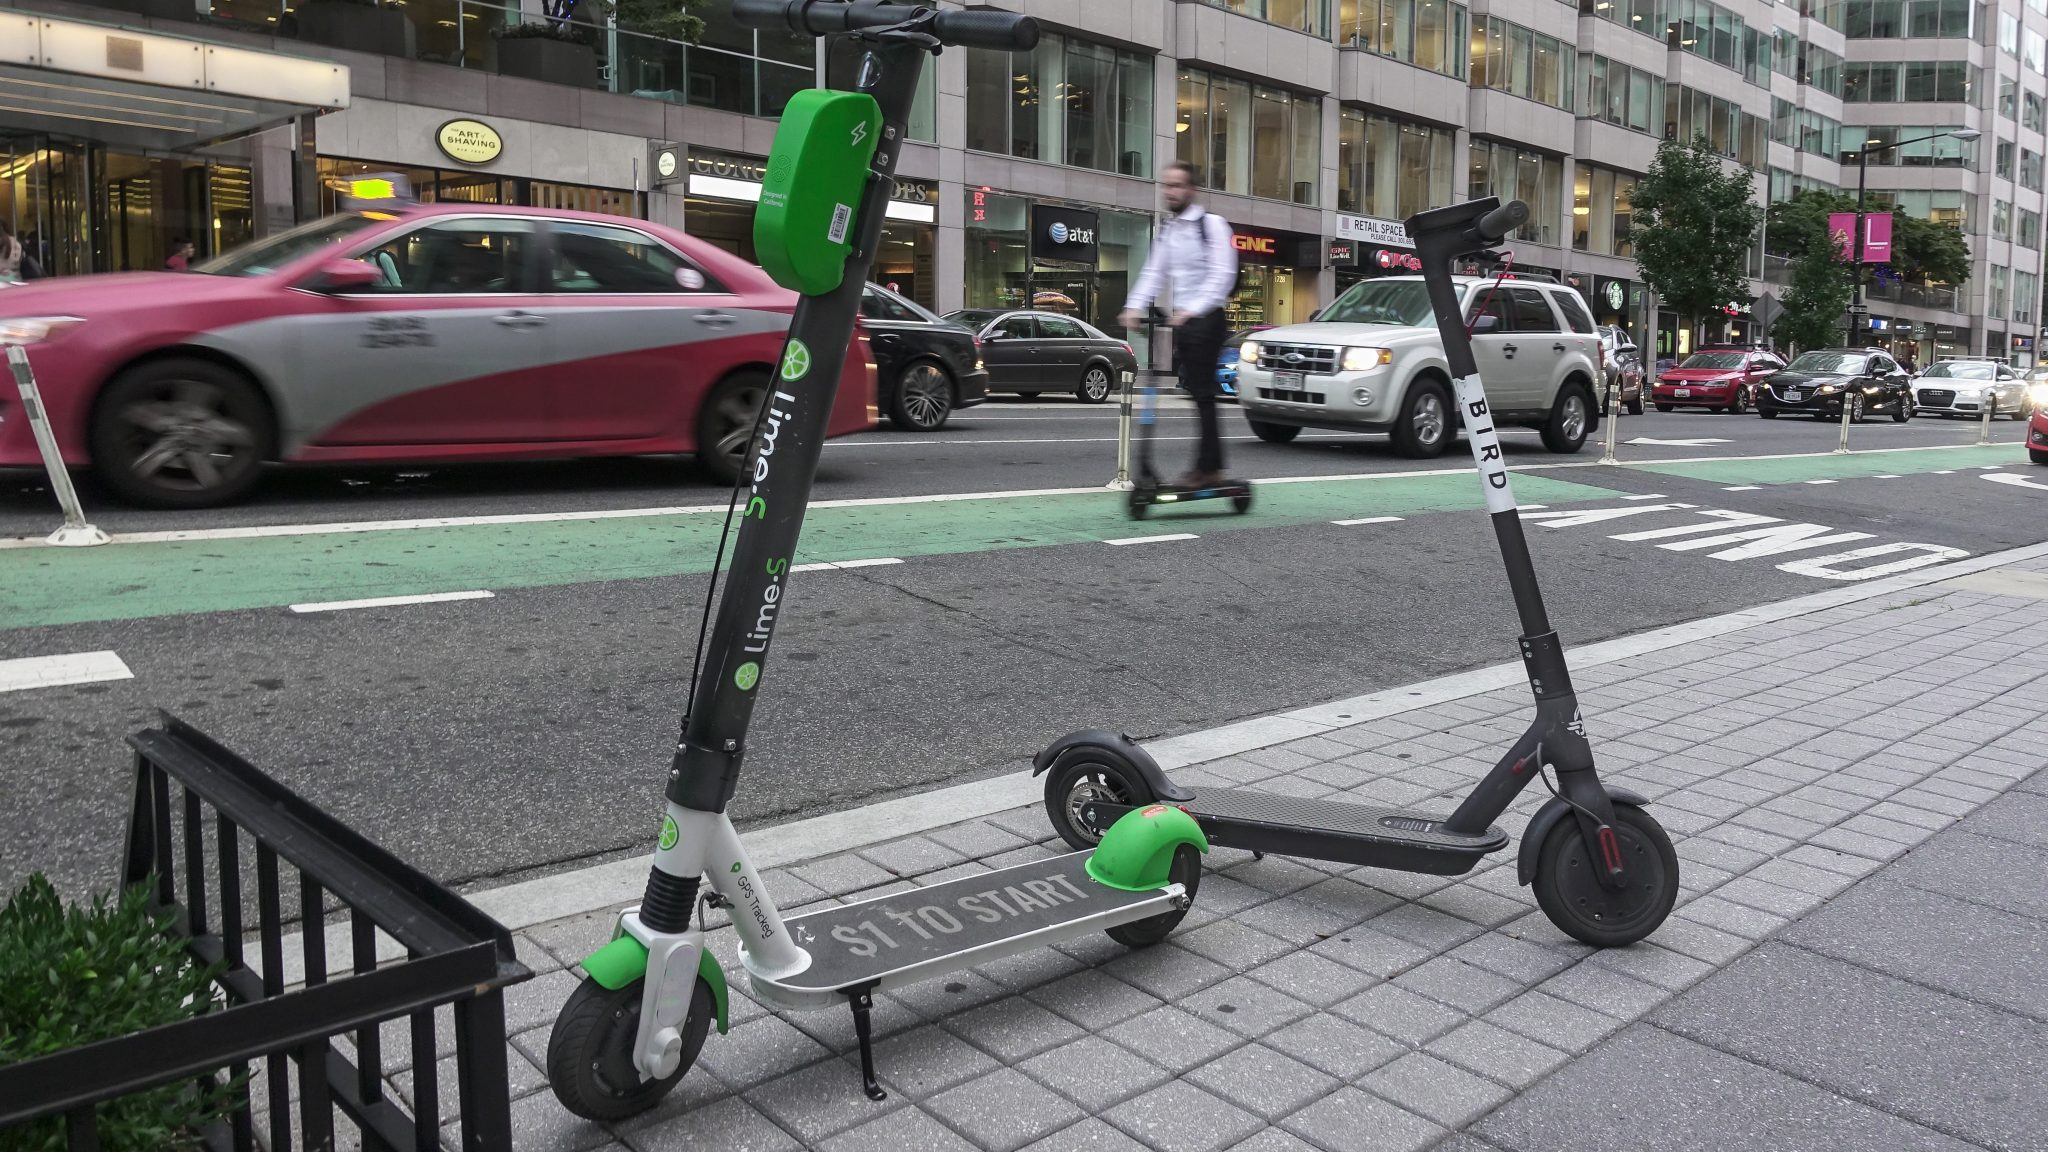 two scooters parked on a sidewalk